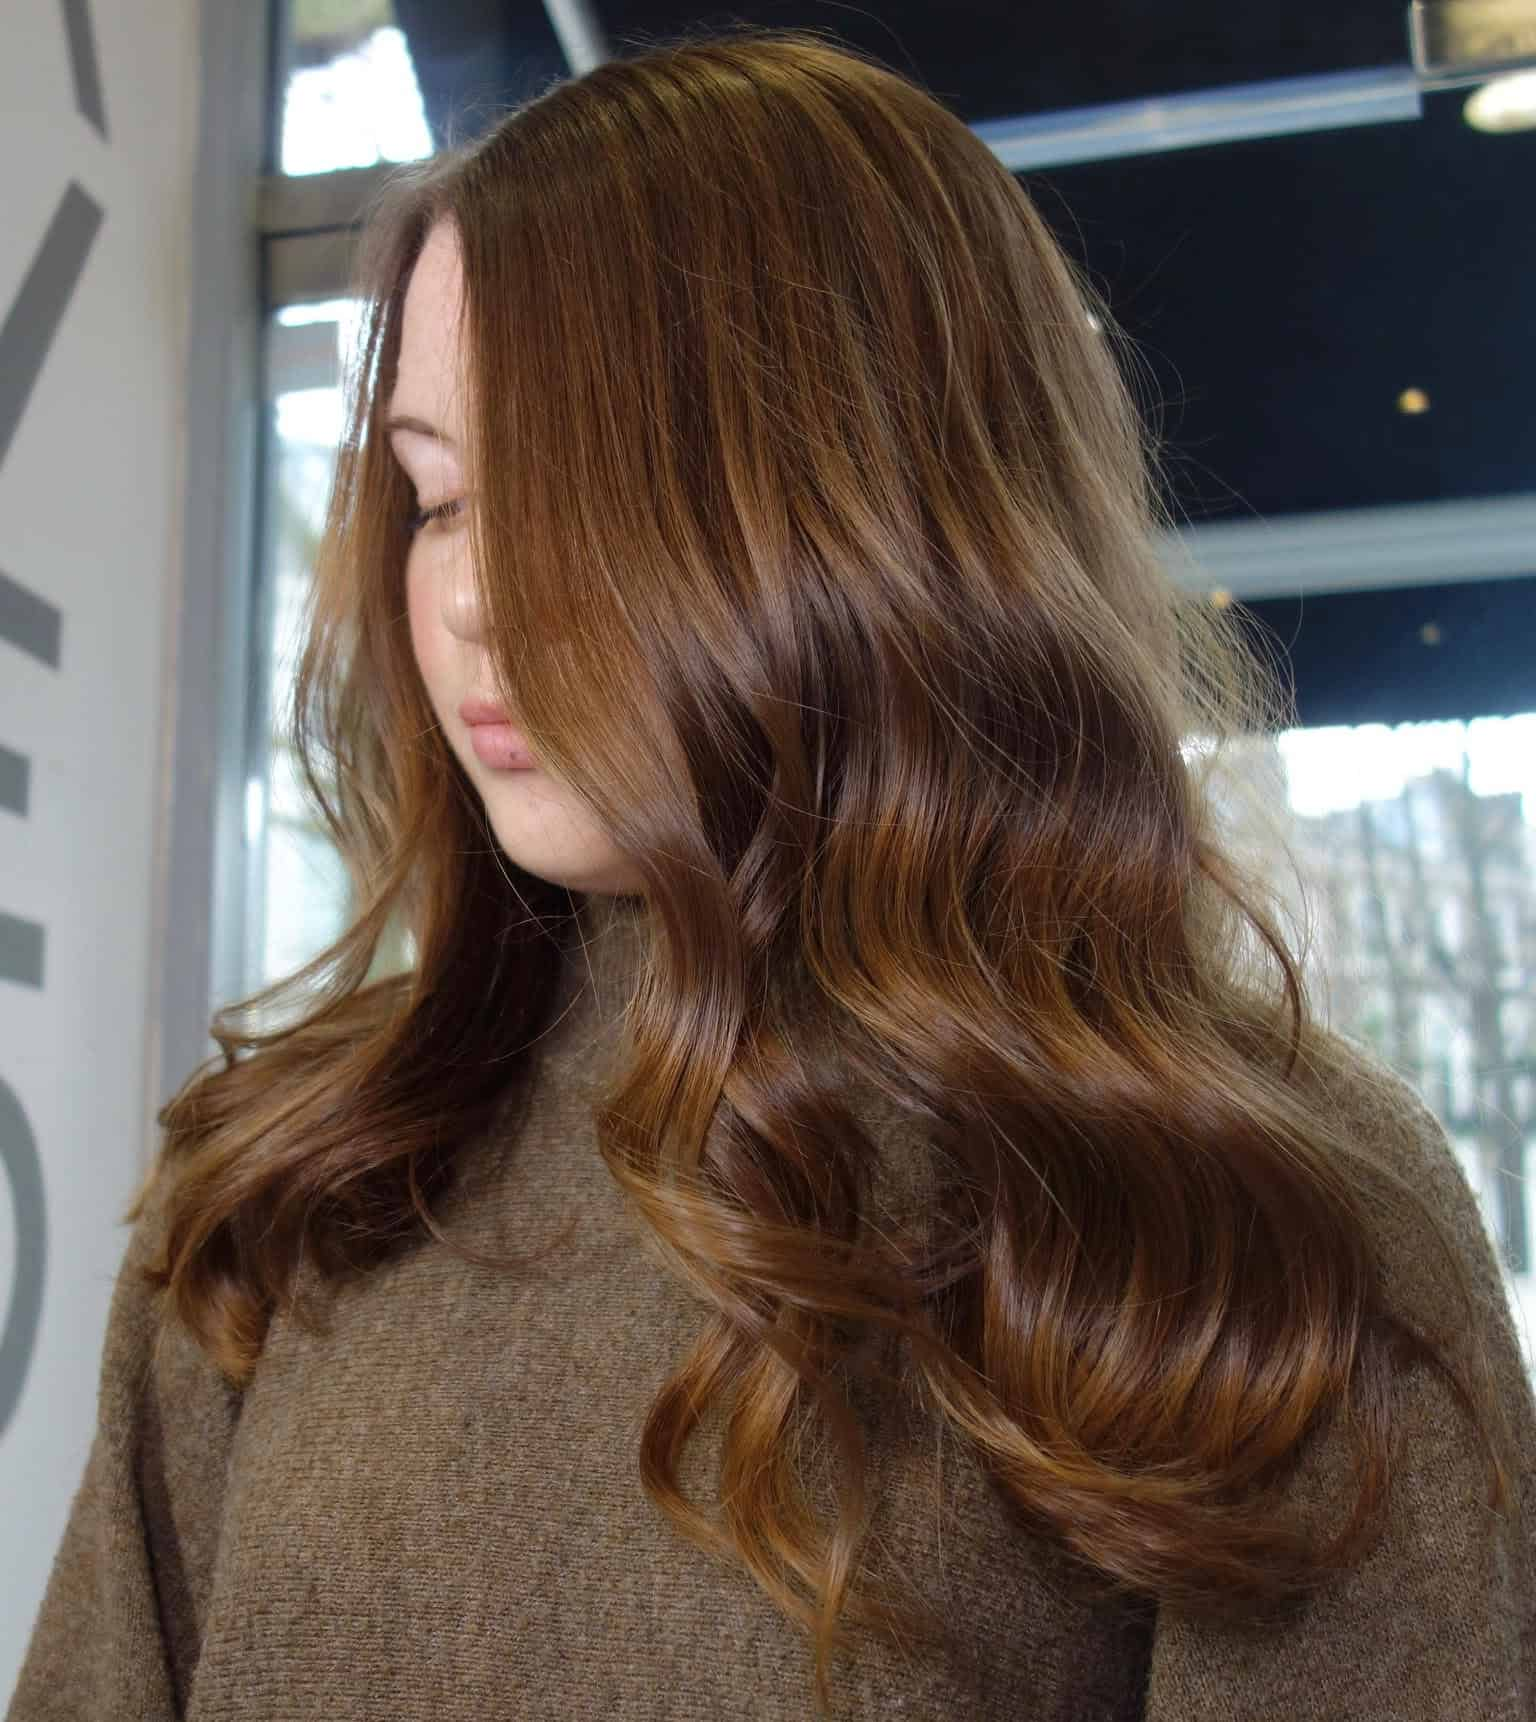 Hair colouring, Hair Styling - Hair Salon Client | Kaplan Atelier - Holland Park Avenue, London